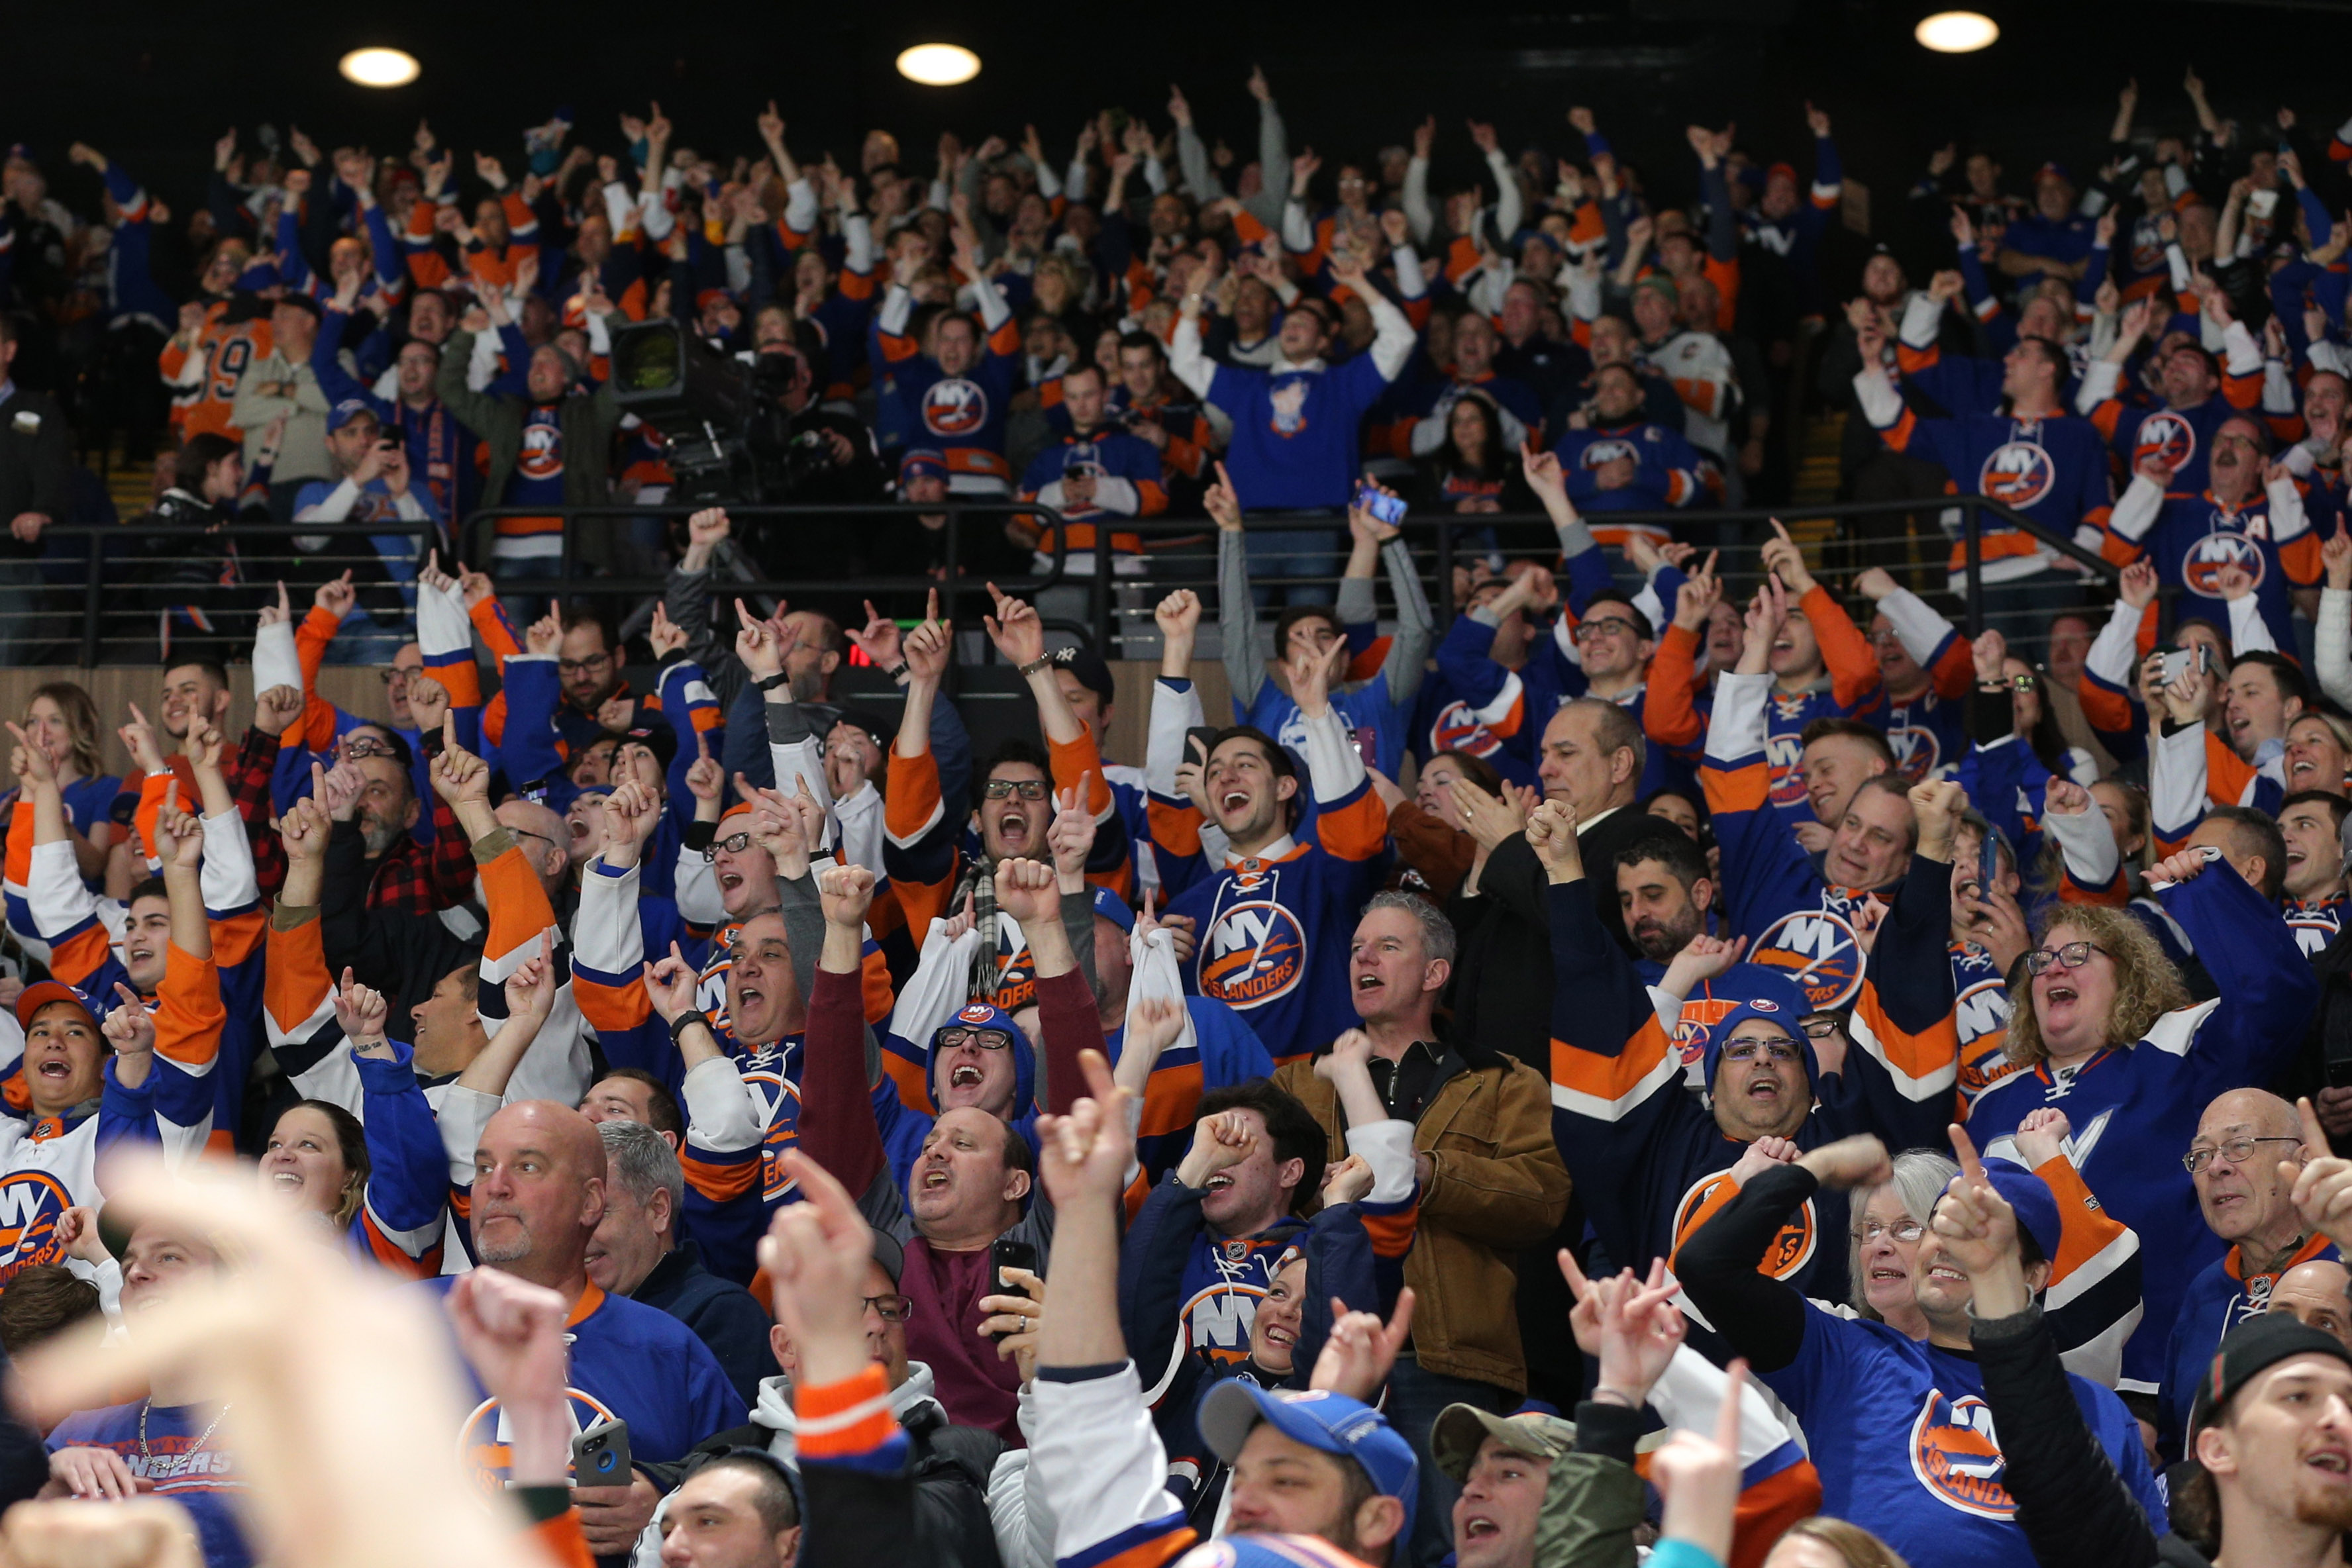 Feb 28, 2019; Brooklyn, NY, USA; New York Islanders fans celebrate a goal against the Toronto Maple Leafs during the second period at the Nassau Veterans Memorial Coliseum. Mandatory Credit: Brad Penner-USA TODAY Sports